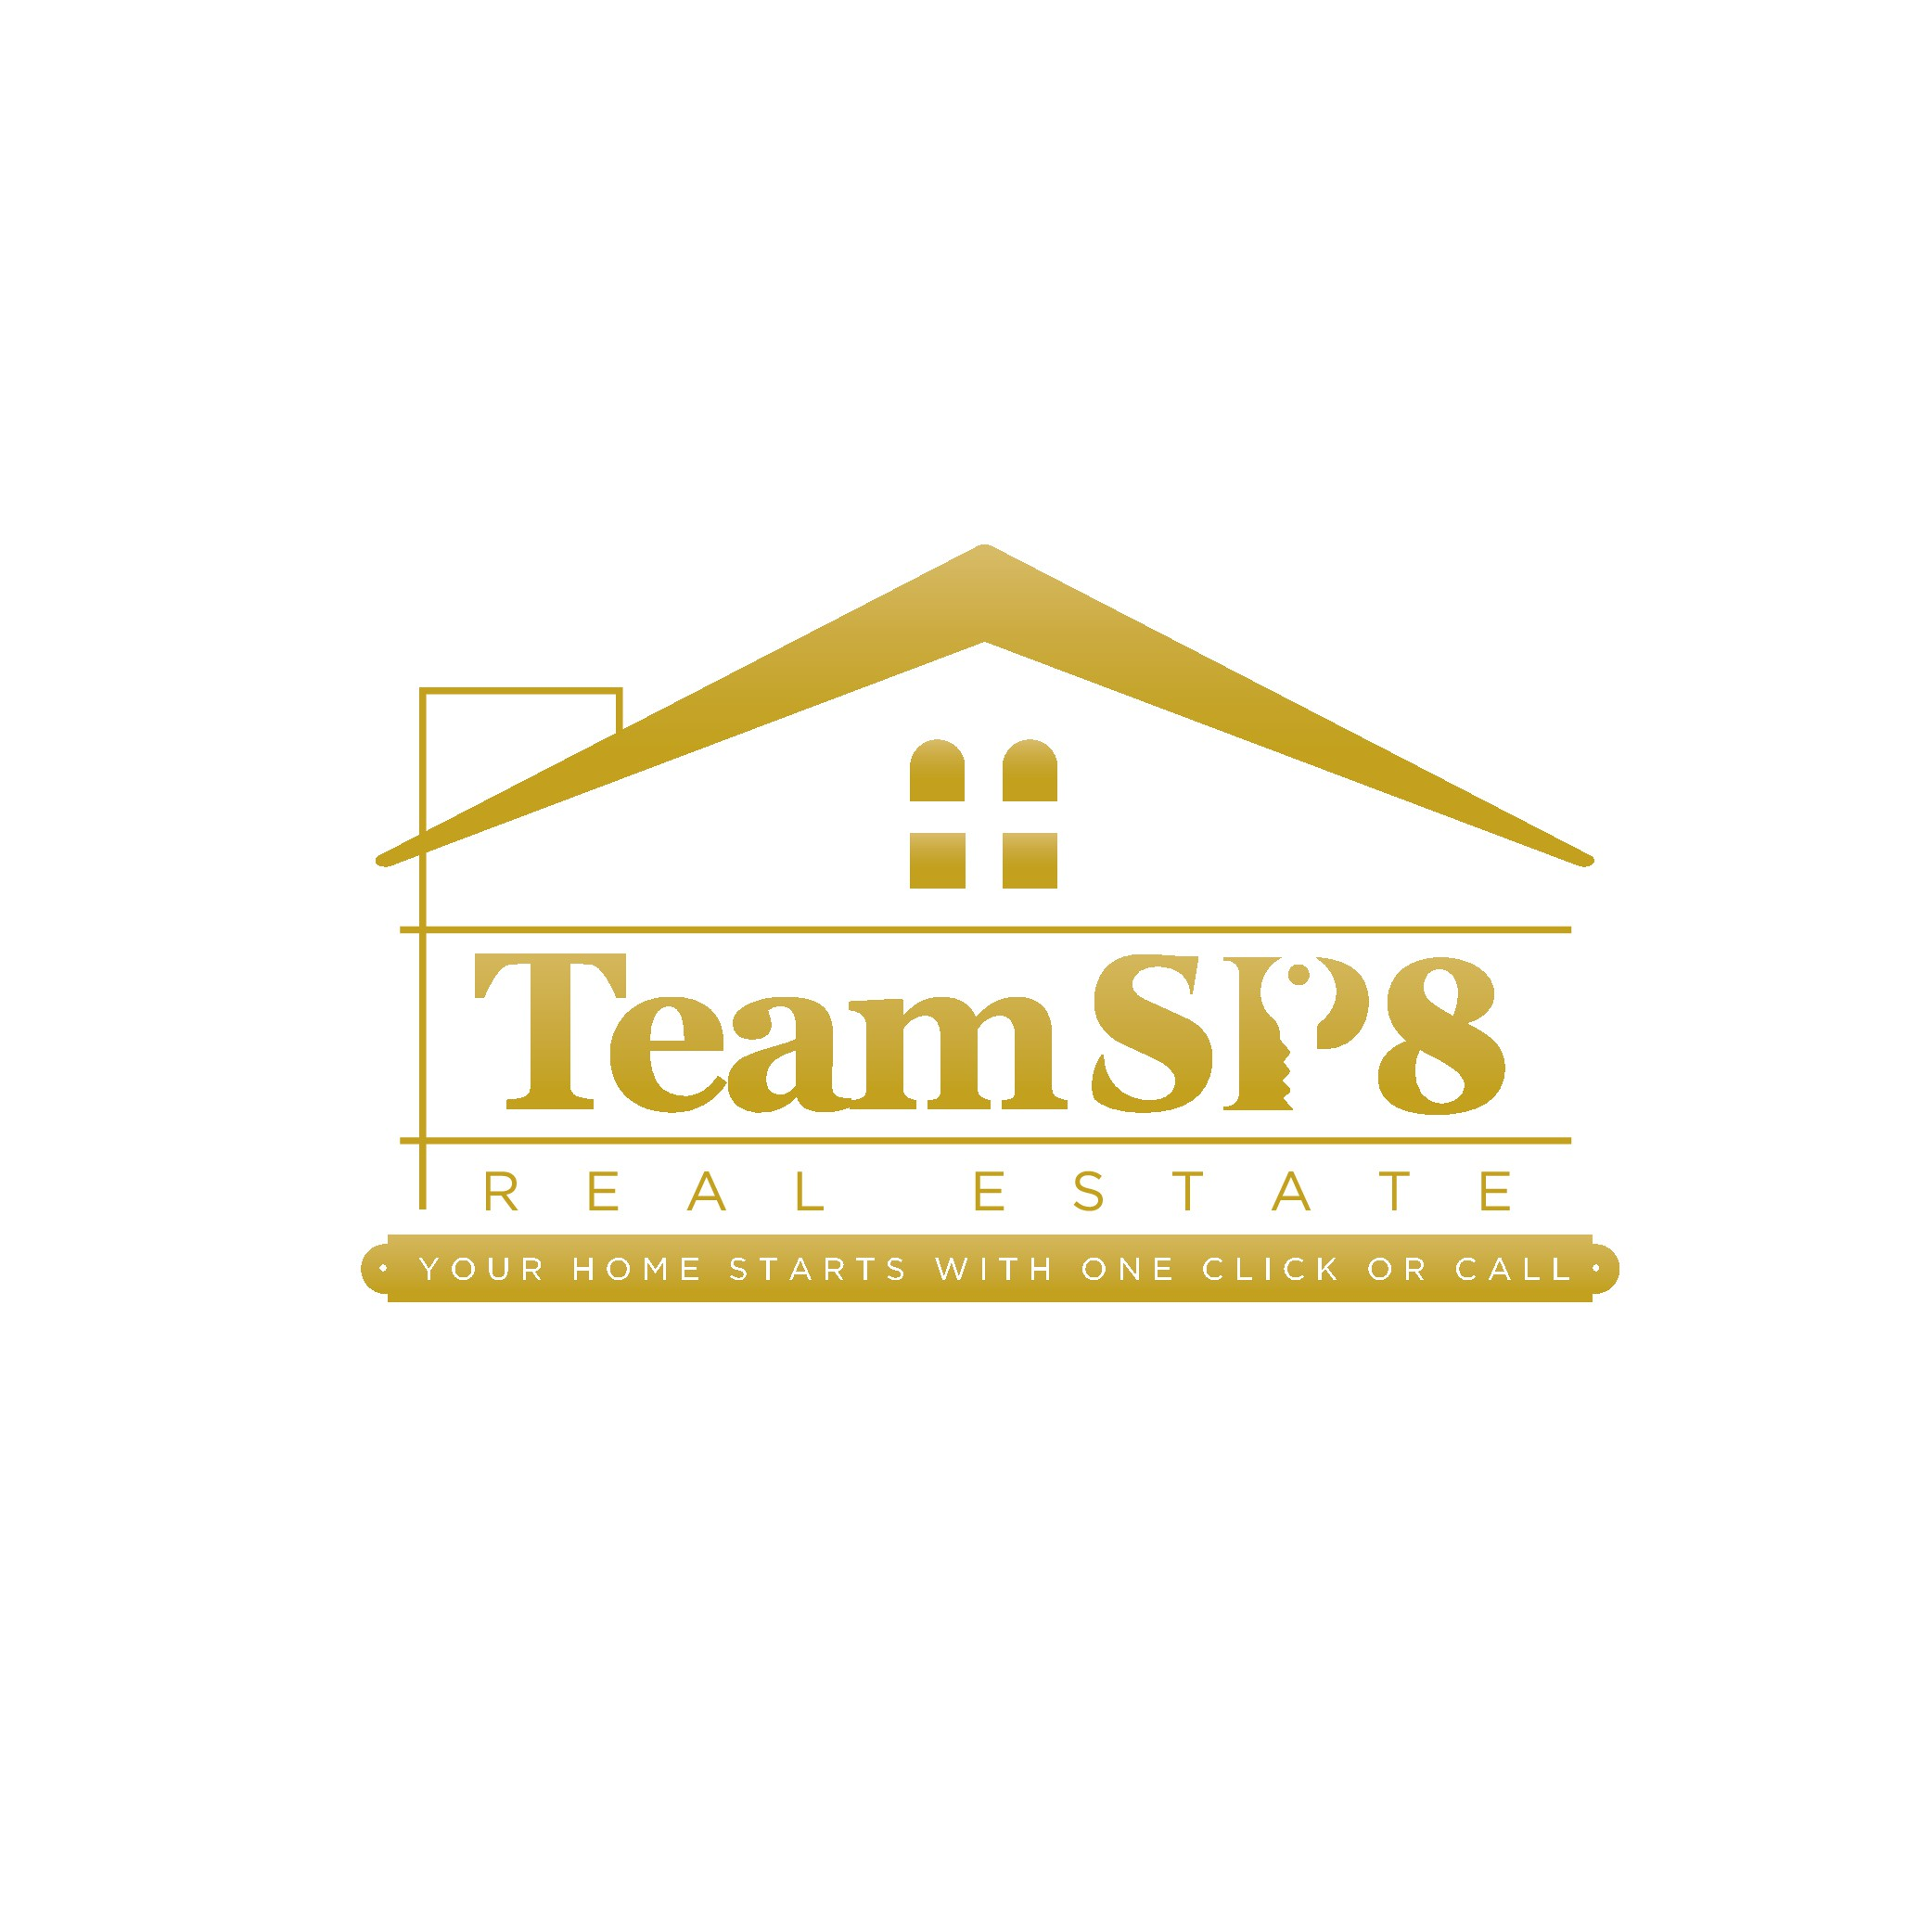 Team Sp8 (Speight)Real Estate need a new catchy Brand